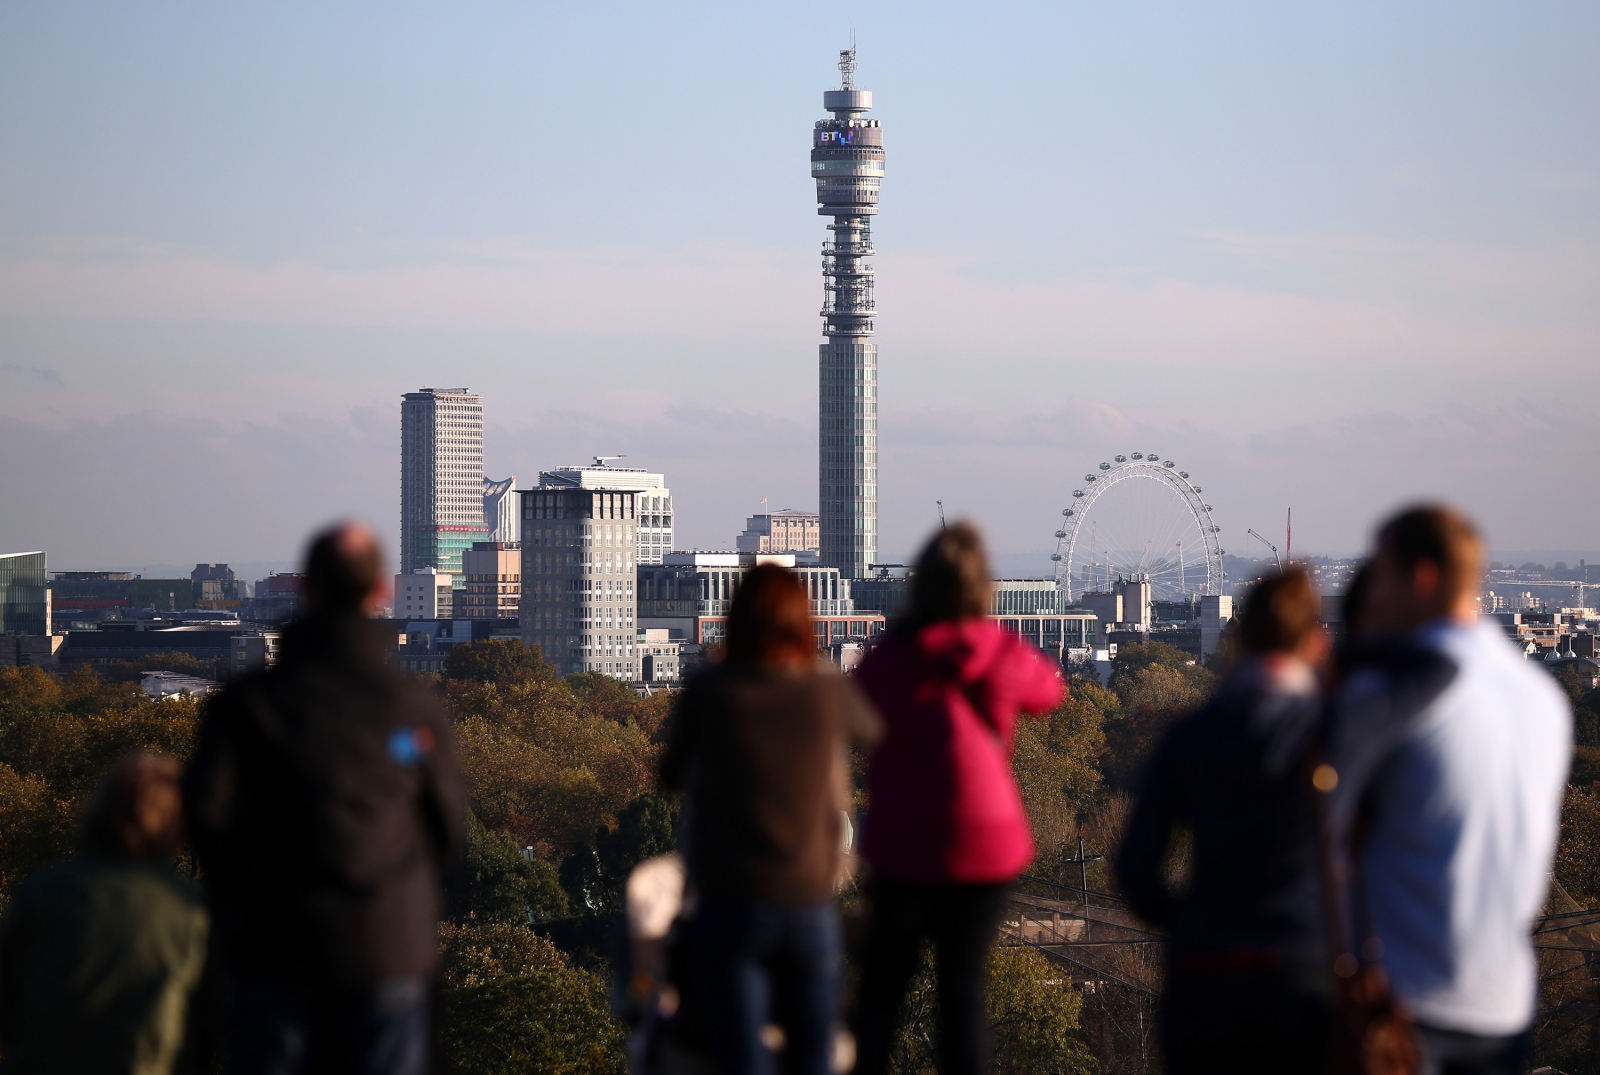 Fake mobile towers are spying on Londoners